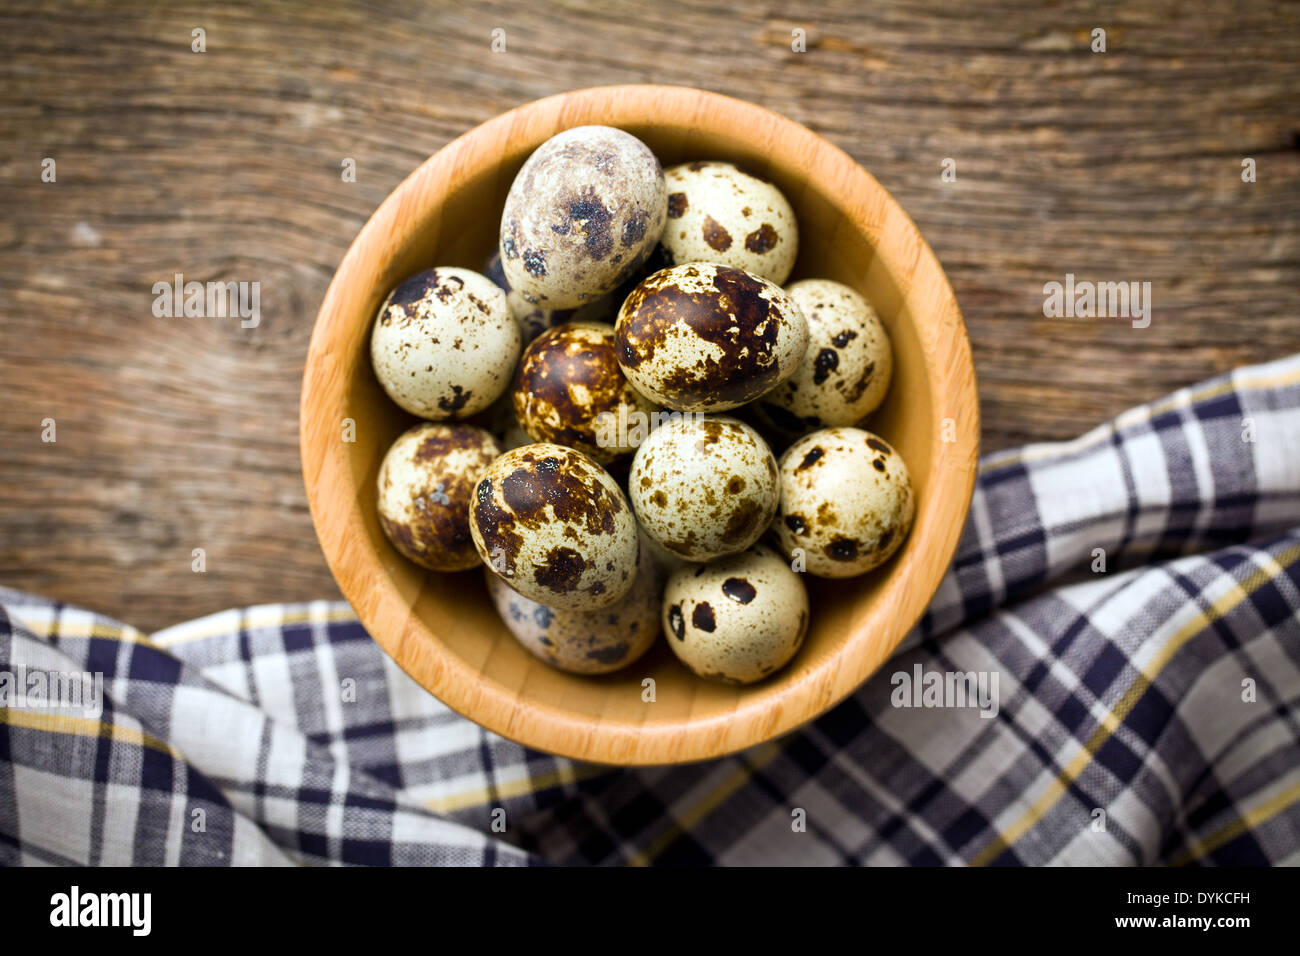 the top view of quail eggs in bowl - Stock Image